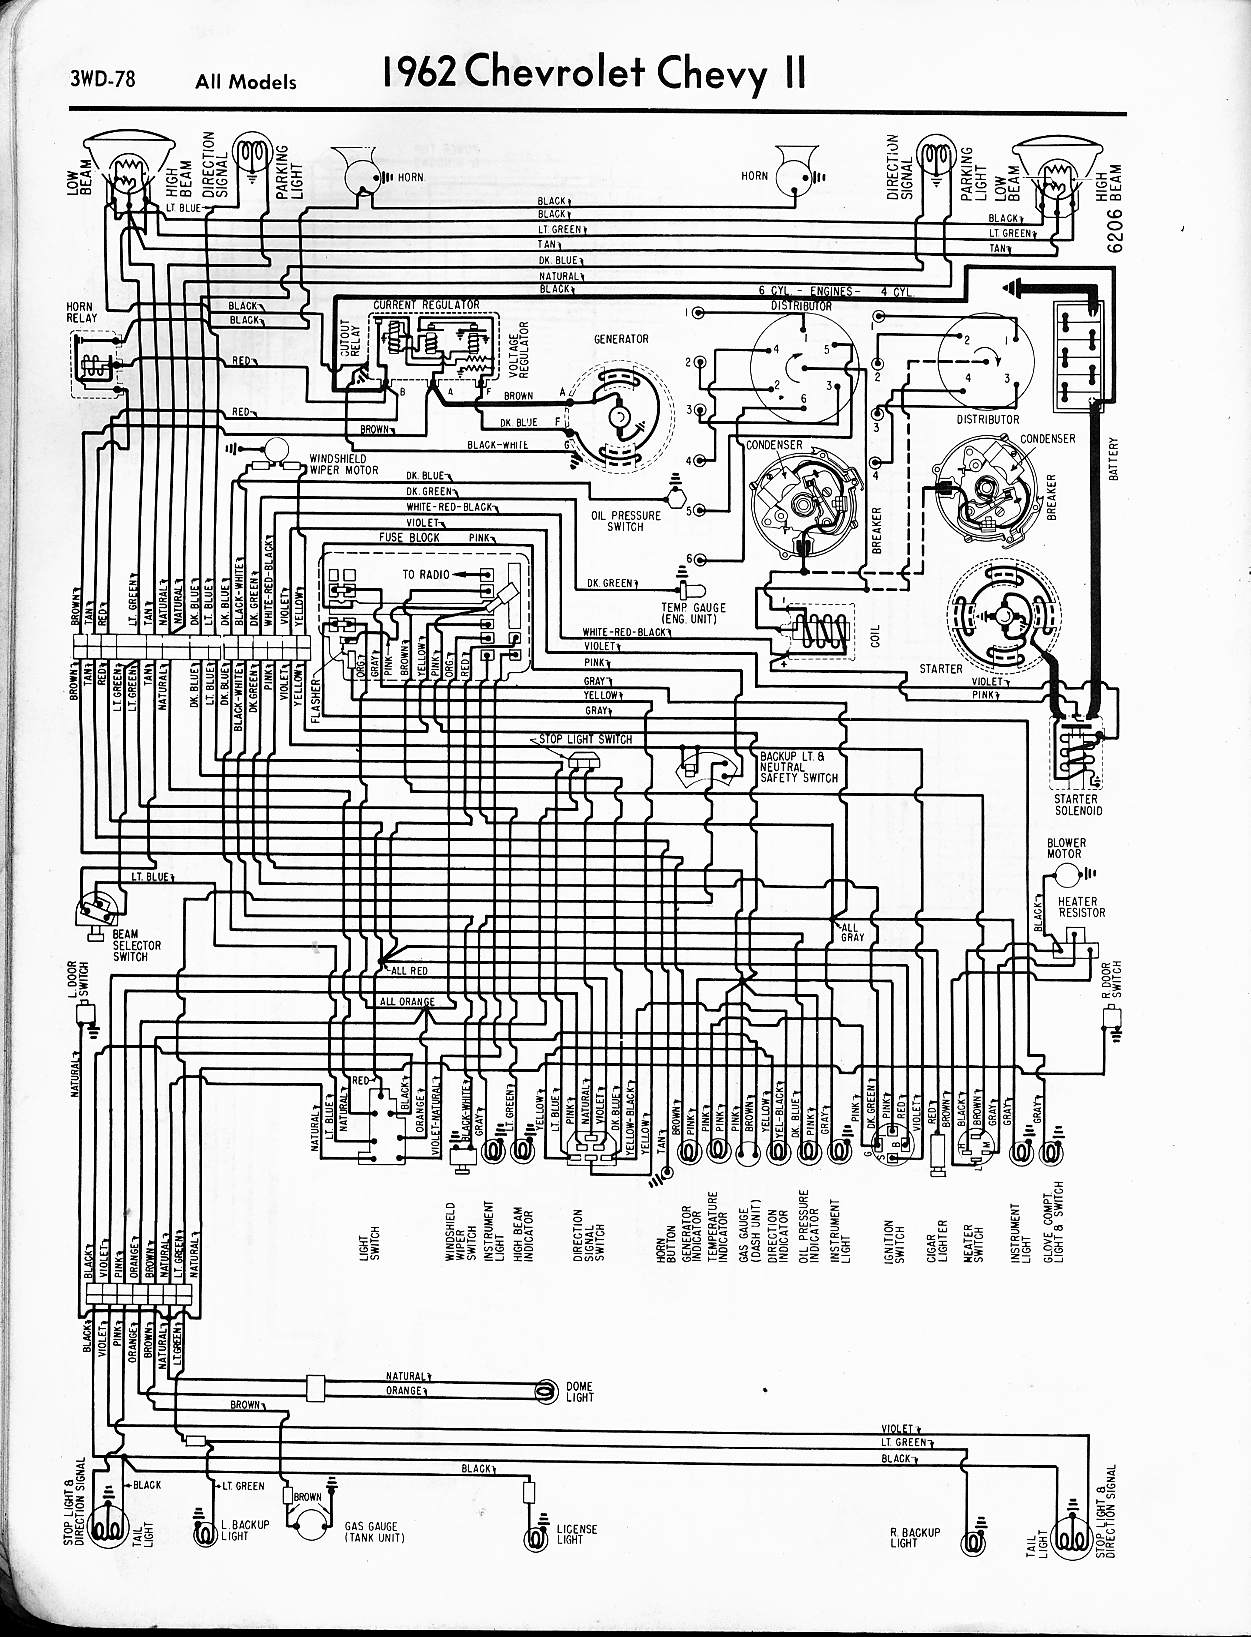 Pleasing 1976 Nova Wiring Diagram Wiring Diagram Tutorial Wiring Digital Resources Unprprontobusorg